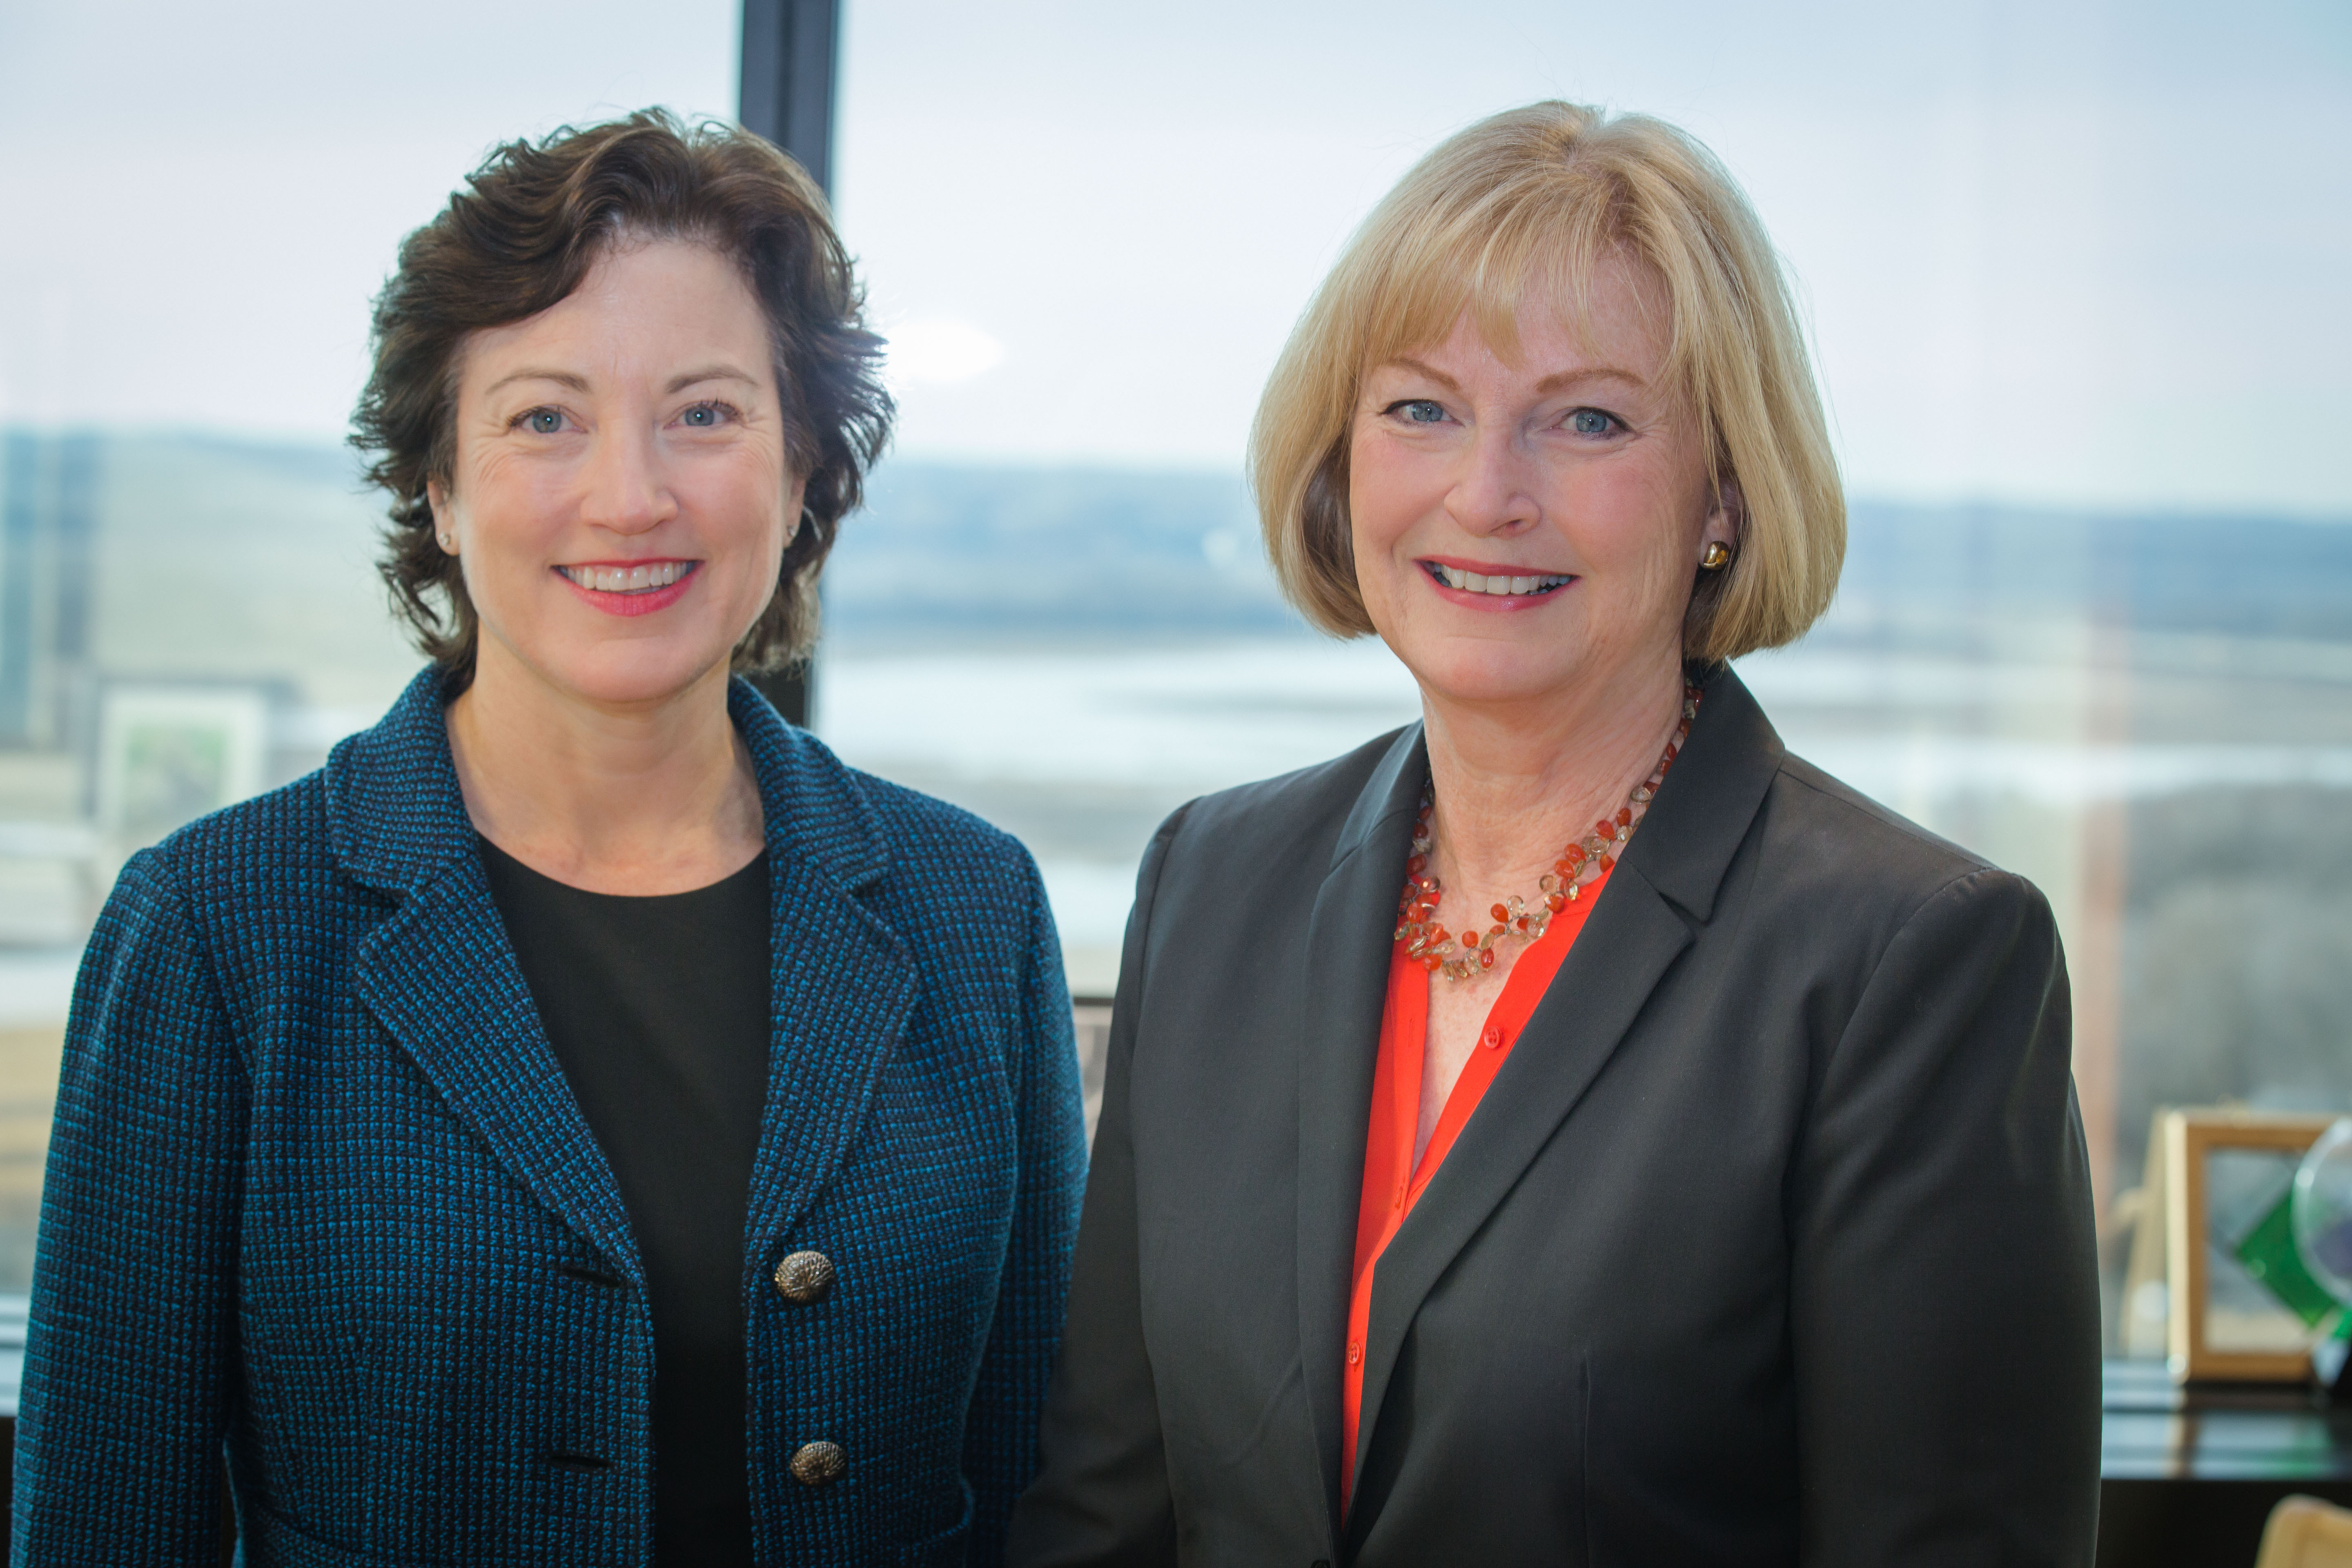 Left to right: HealthPartners Executive Vice President Andrea Walsh, and HealthPartners President and CEO Mary Brainerd. HealthPartners announced today that Mary Brainerd will retire after 15 years as President and CEO, effective June 1, 2017. Andrea Walsh, who has held a number of leadership positions at HealthPartners since 1994, has been named Brainerd's successor (Photo: HealthPartners).